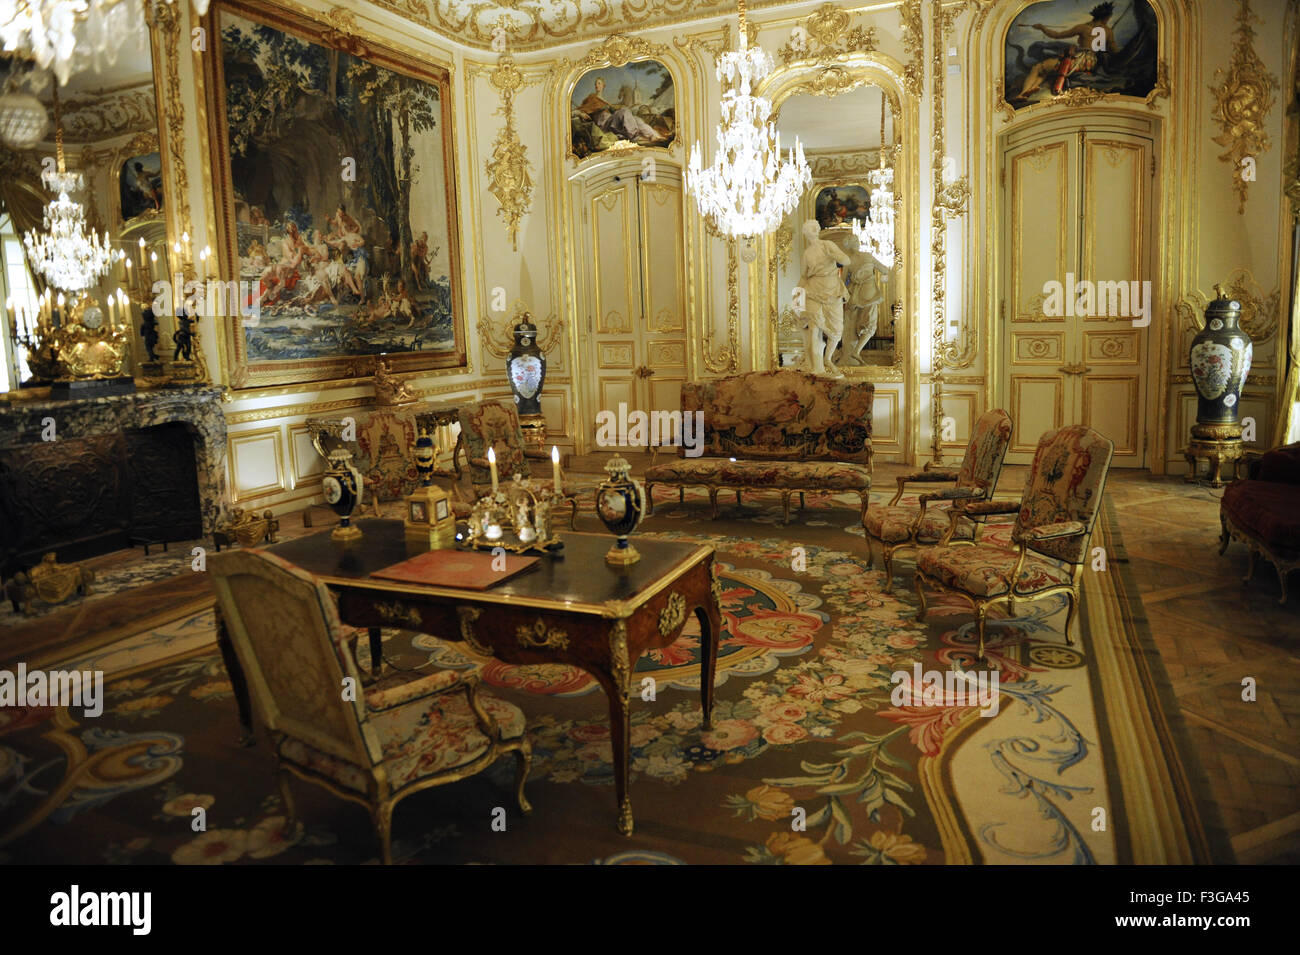 Israel Museum. Interior. Eighteenth century Venetian Room. Decoration and furniture. Jerusalem. - Stock Image